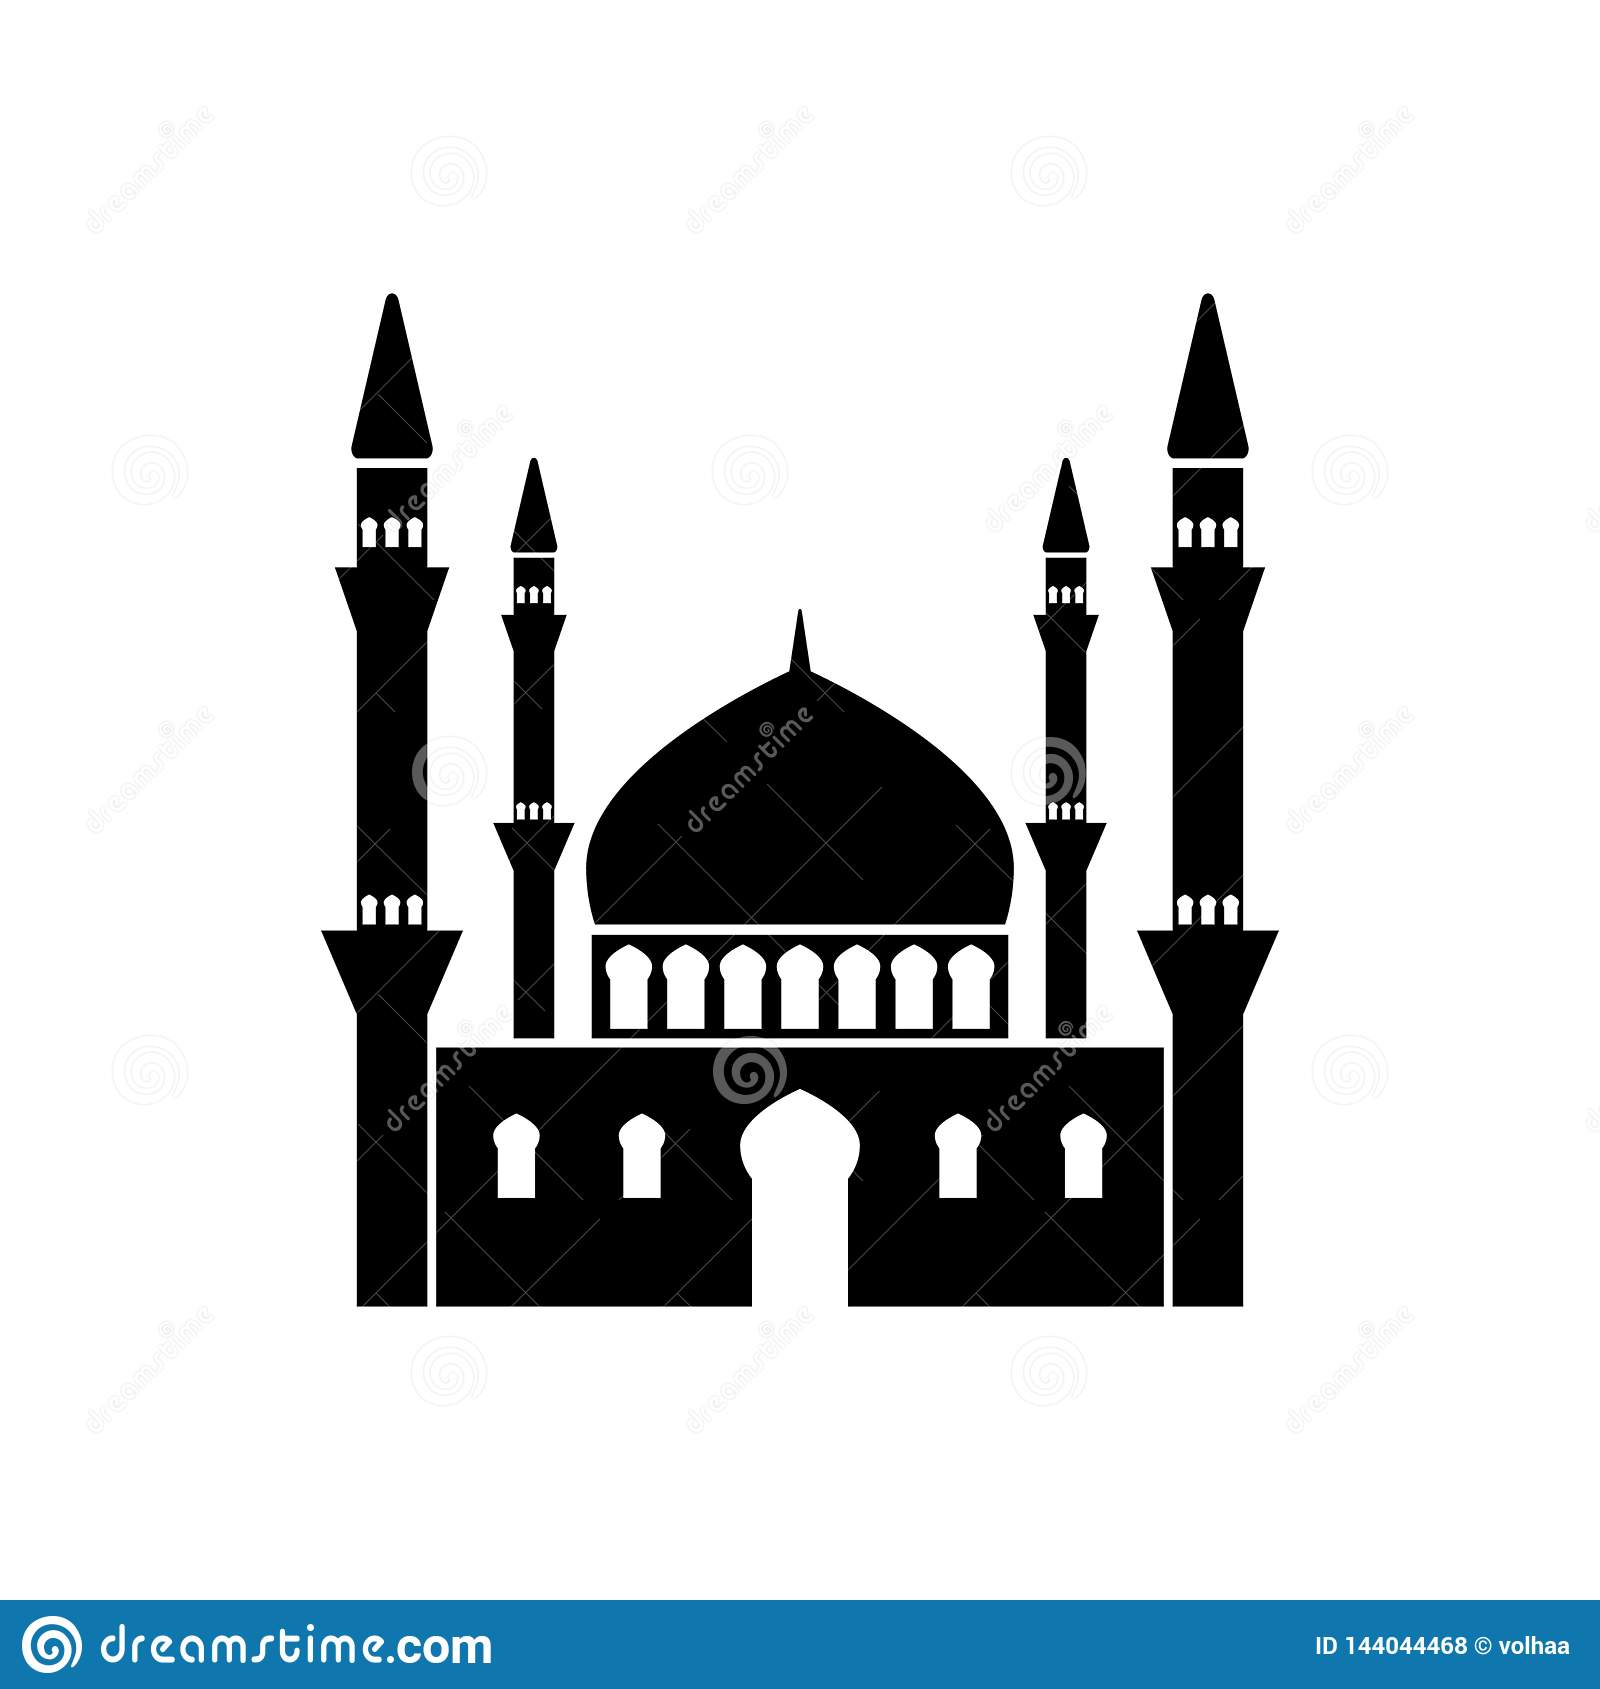 mosque vector icon islam muslim stock vector illustration of istanbul traditional 144044468 https www dreamstime com mosque vector icon white background mosque vector icon islam muslim image144044468